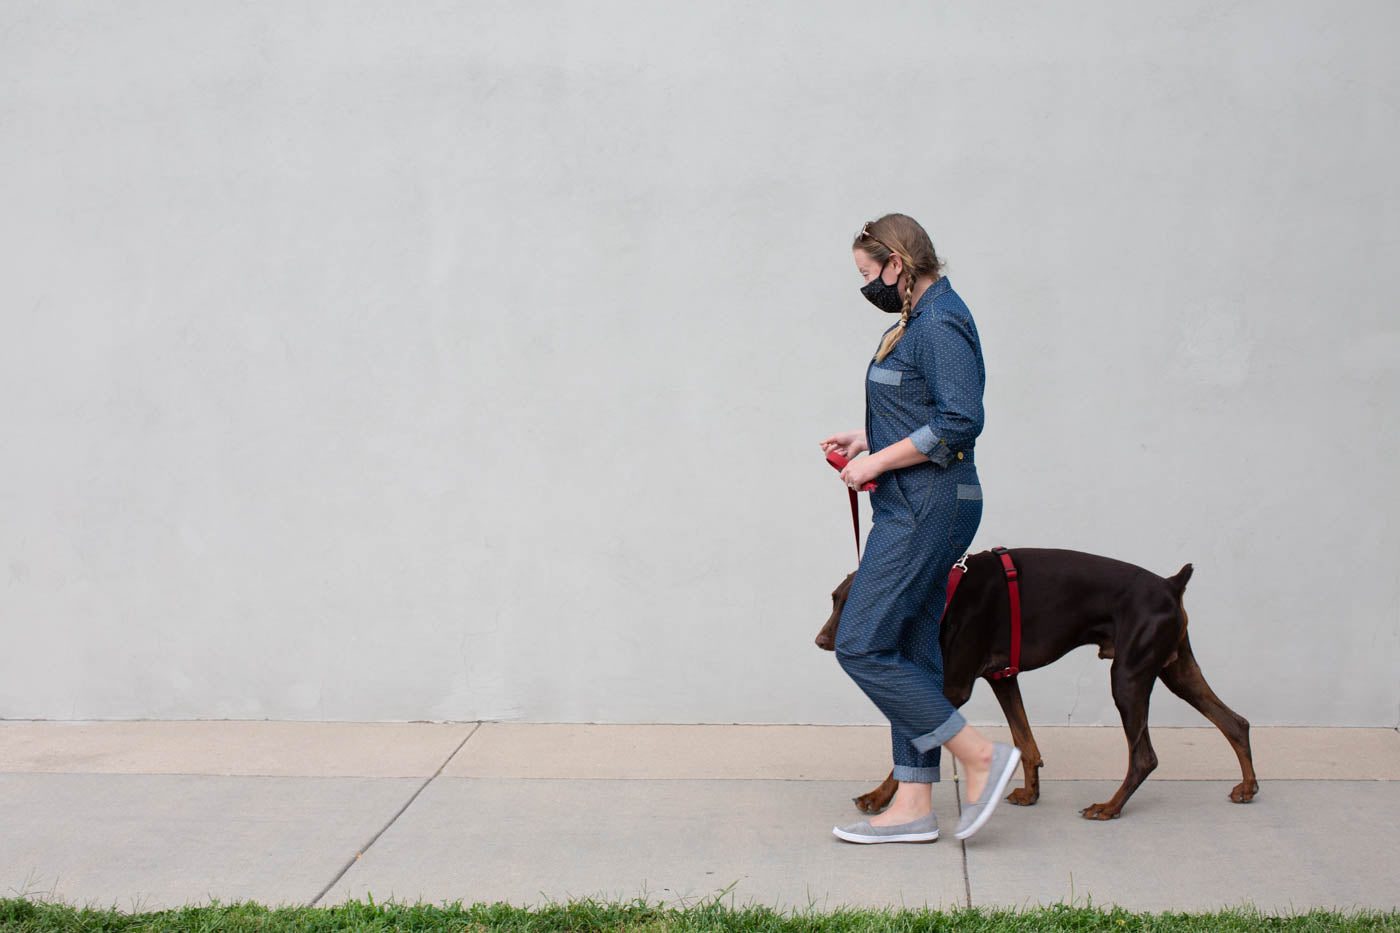 Women walking on a sidewalk past a grey wall wearing Thelma by Merchant & Mills in indigo dots with her brown dog walking beside her.